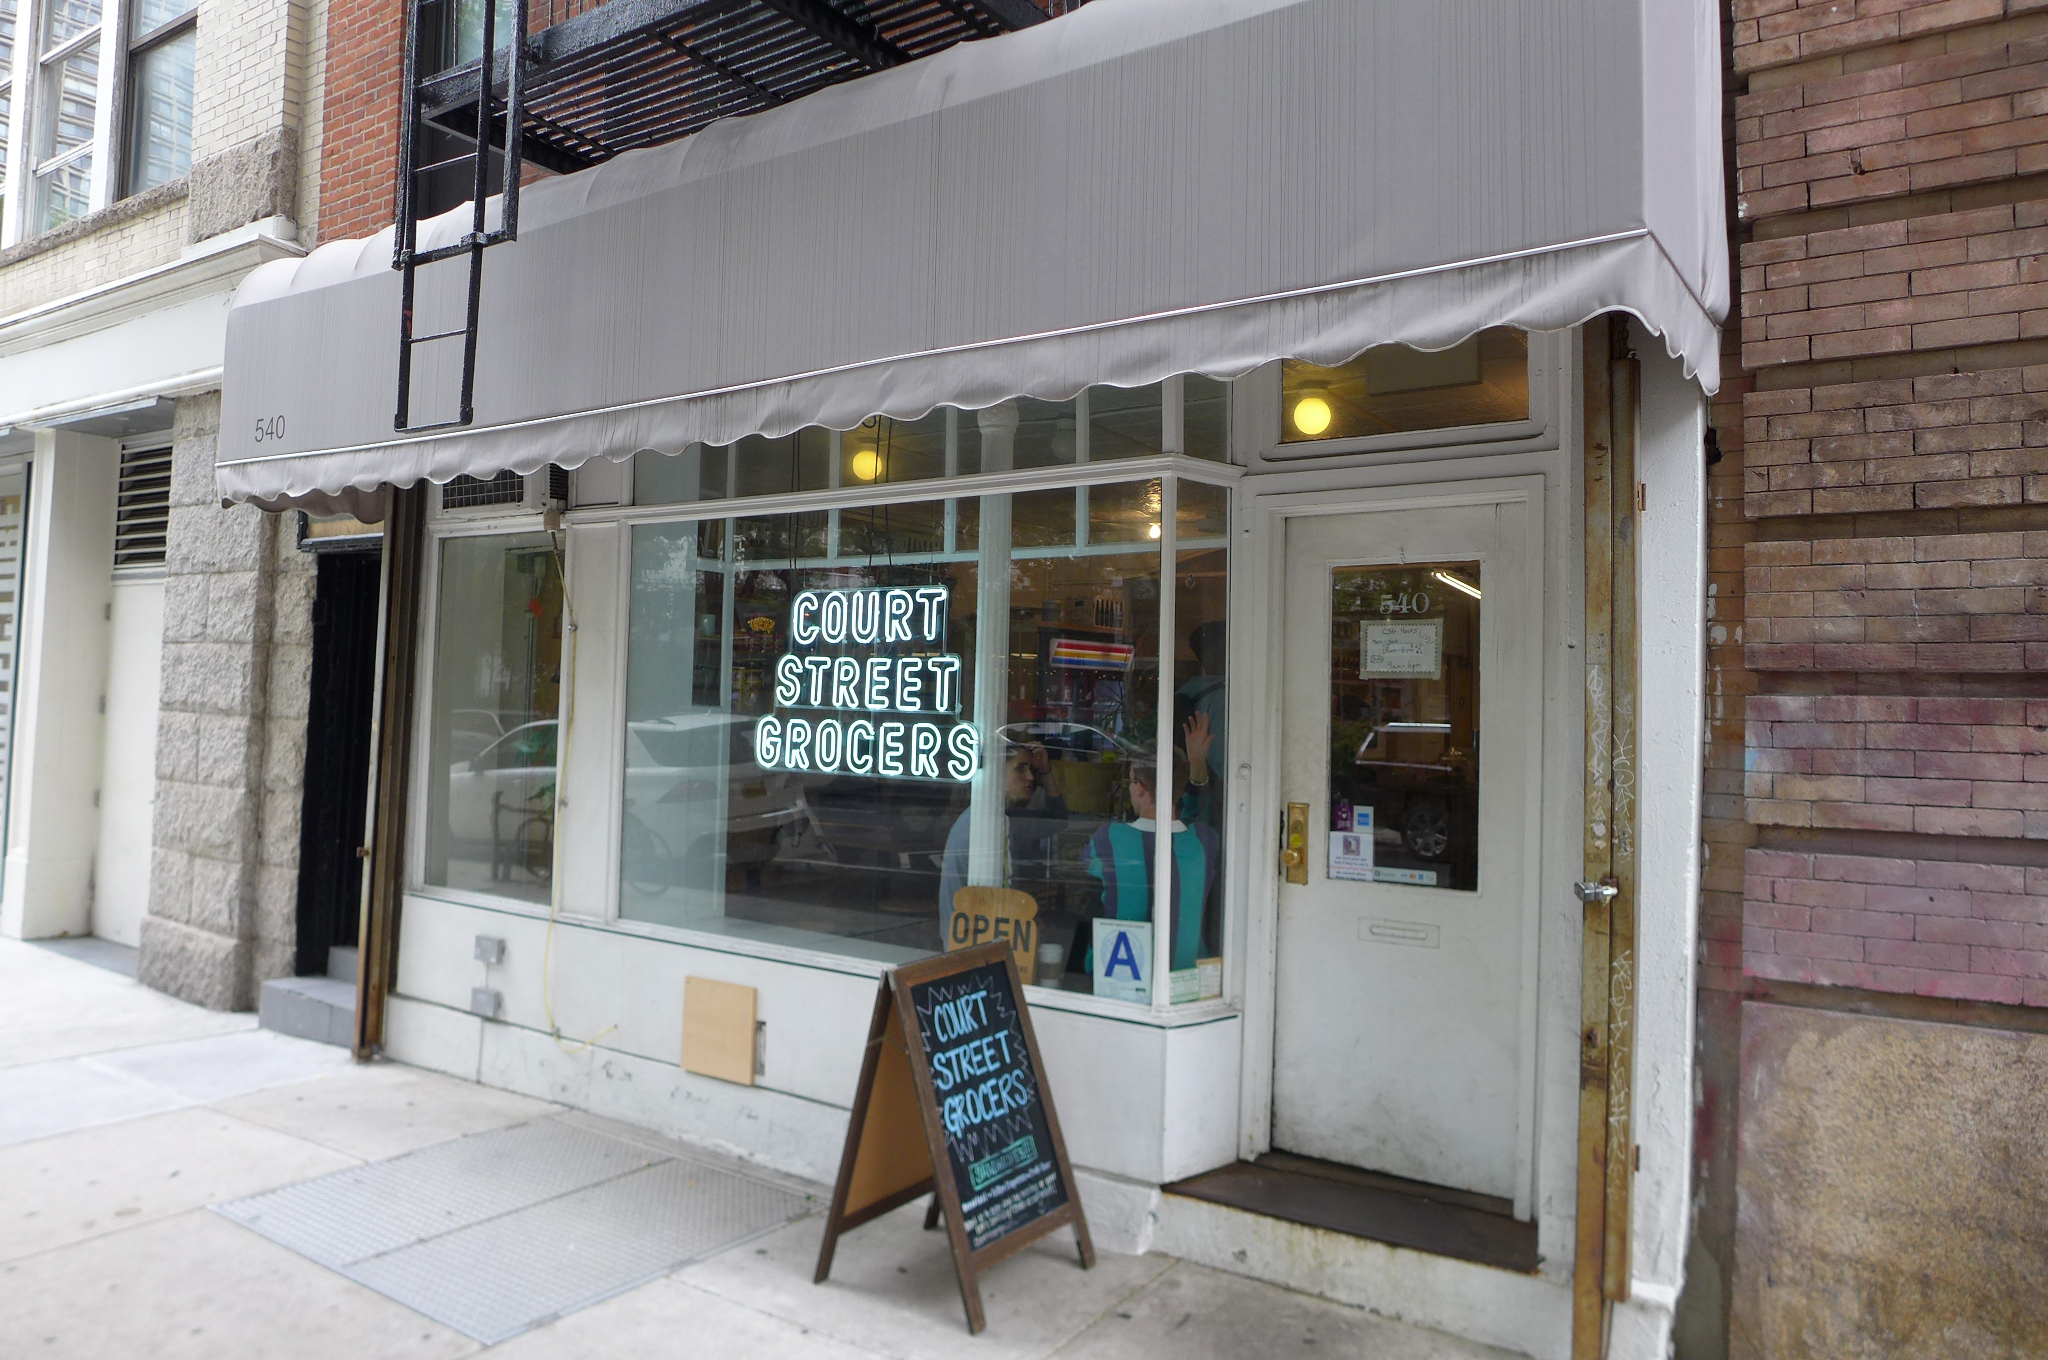 The storefront of Court Street Grocers, seen from an oblique angle, has a white neon sign burning in the window...